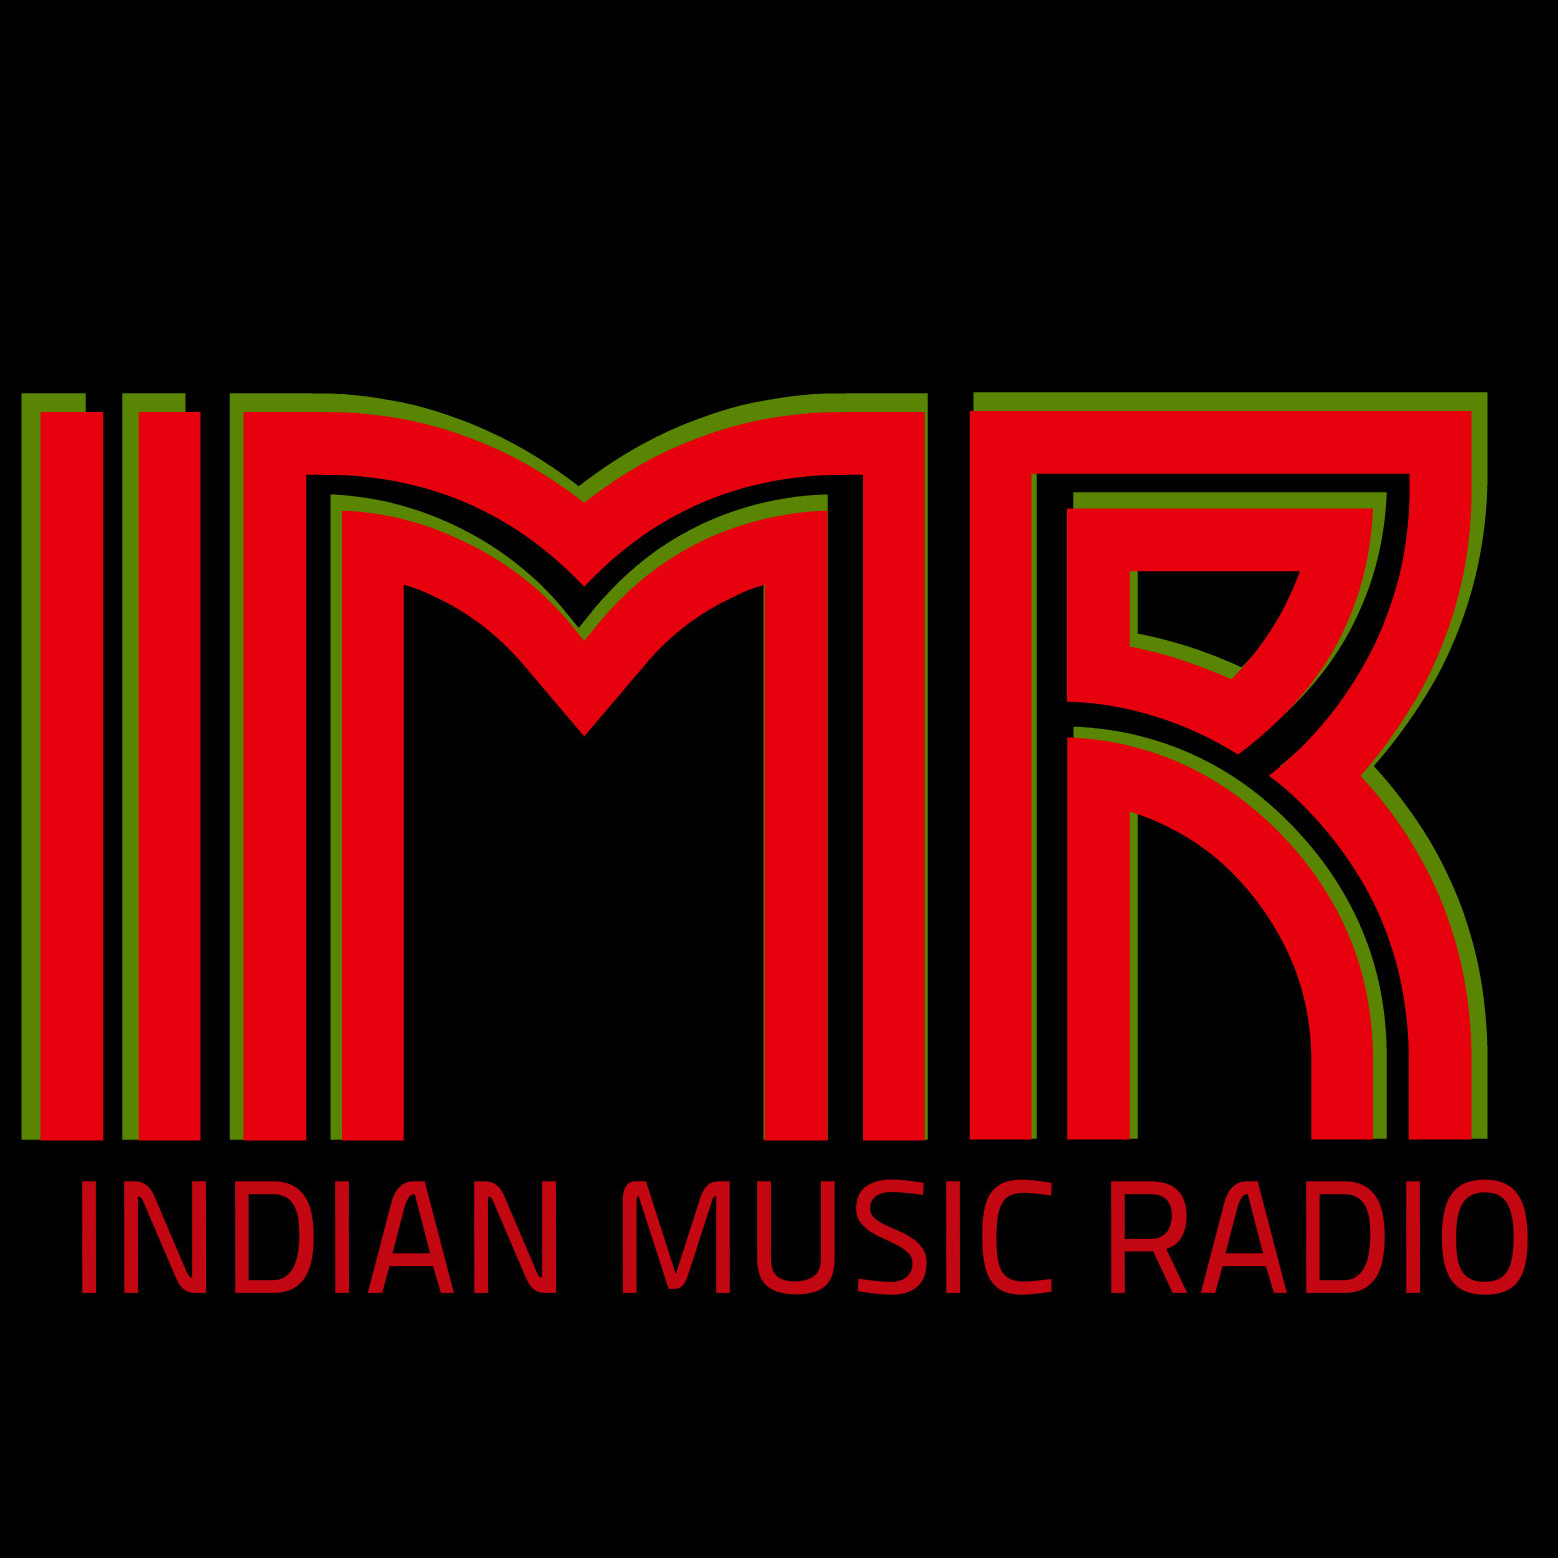 Indian Music Radio